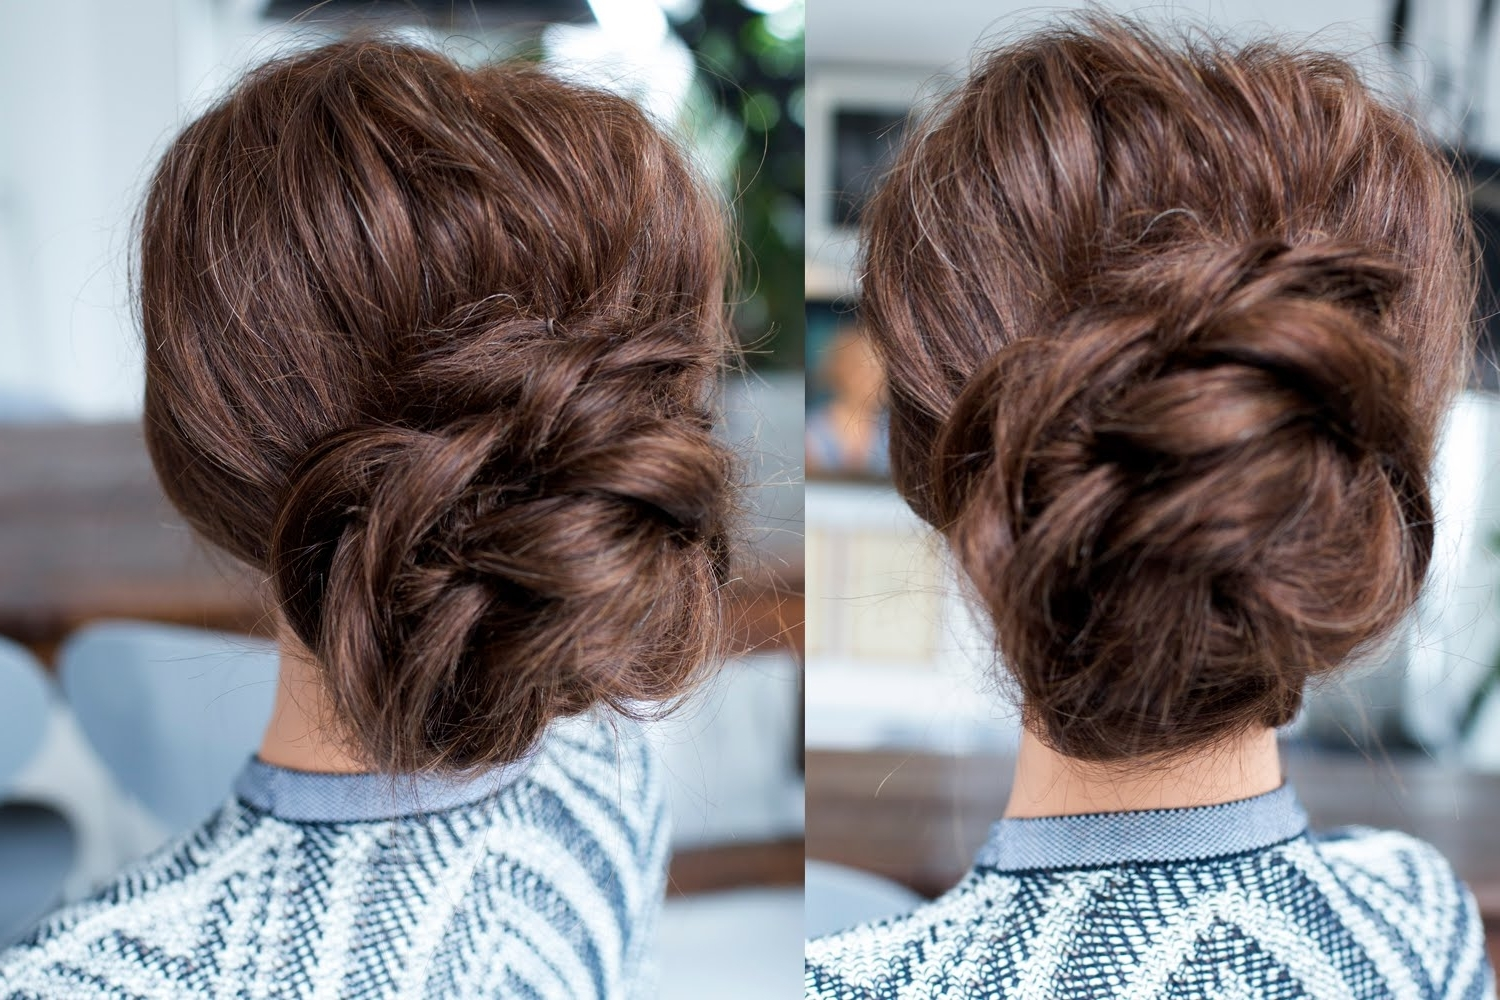 Tame Your Tresses With These Gorgeousstyles For Thick Impressive Inside Easy Updo Hairstyles For Long Thick Hair (View 14 of 15)